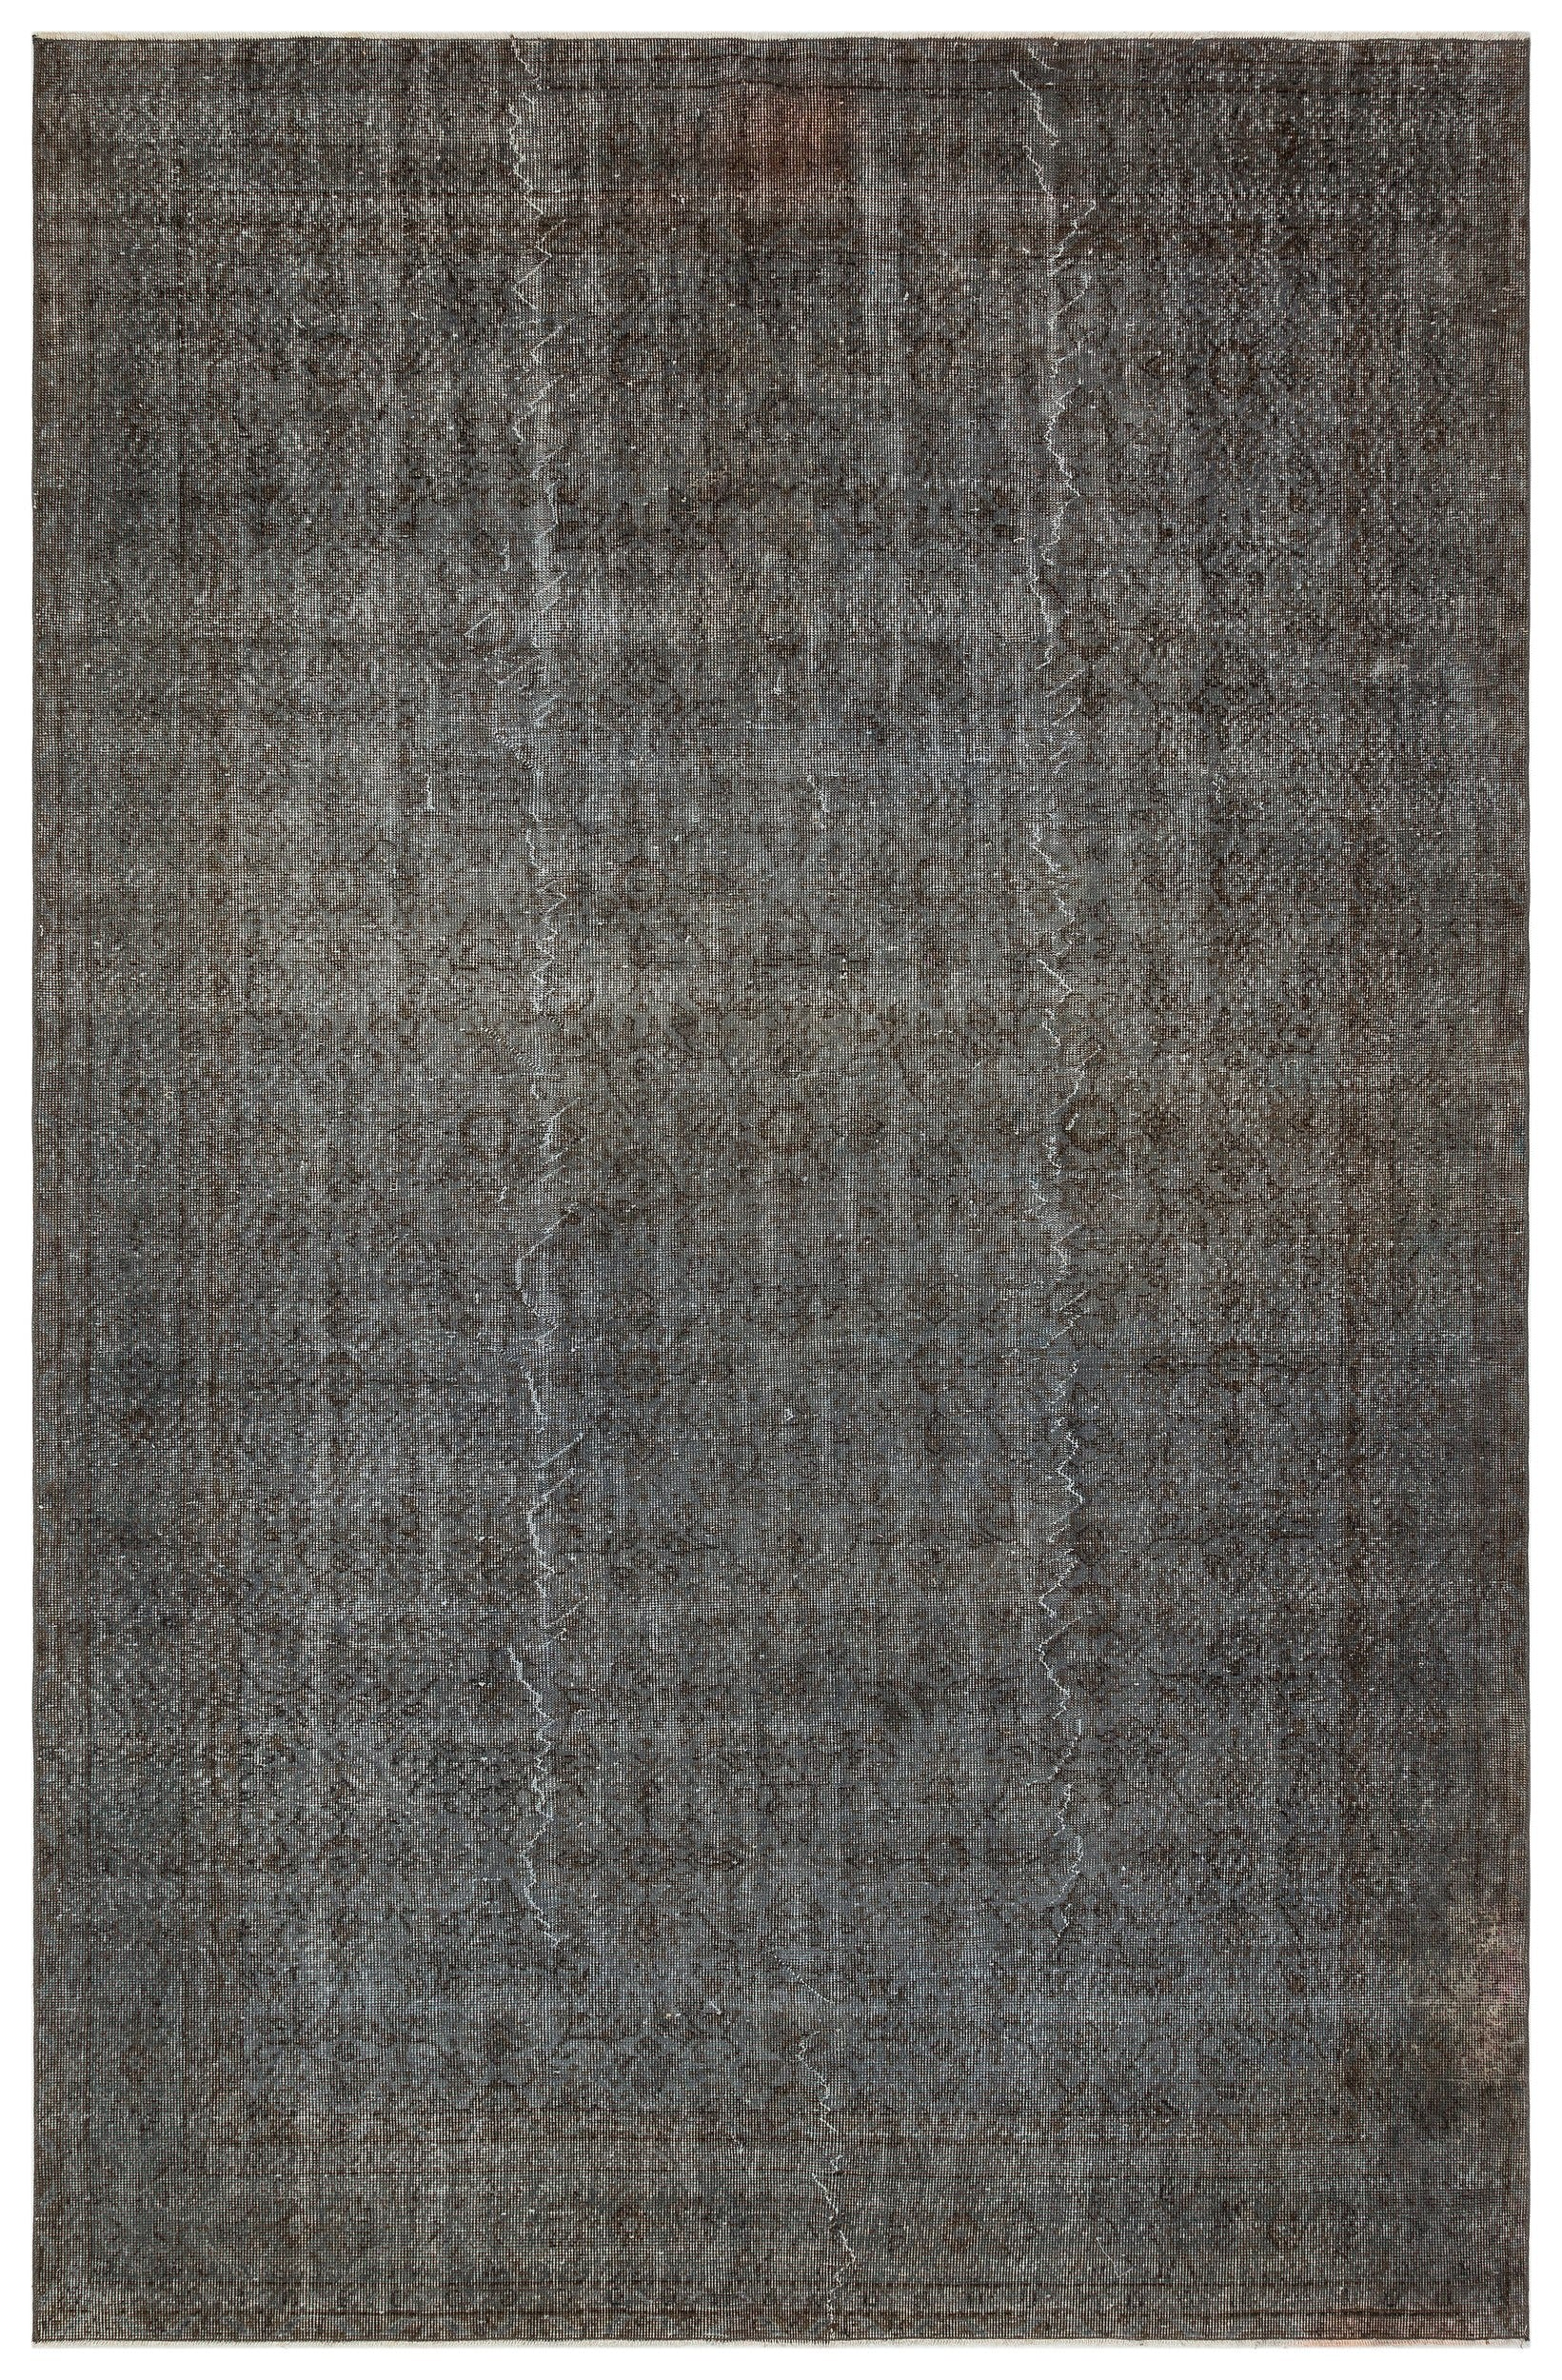 Gray Over Dyed Vintage Rug 7'2'' x 10'10'' ft 219 x 330 cm